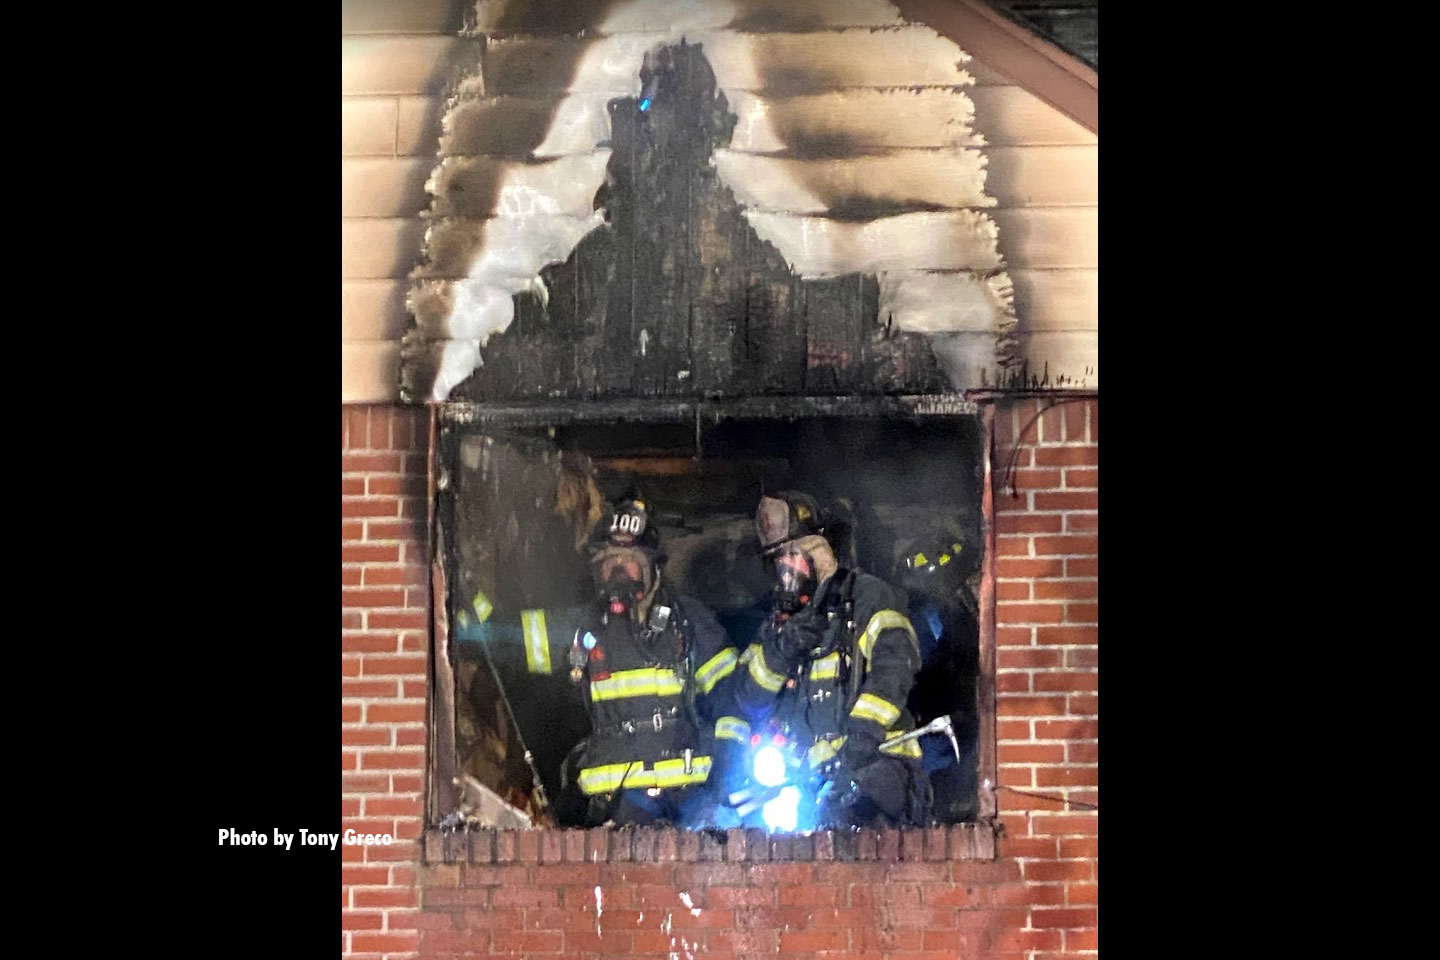 Firefighters at a window during fire operations in Teaneck, New Jersey.